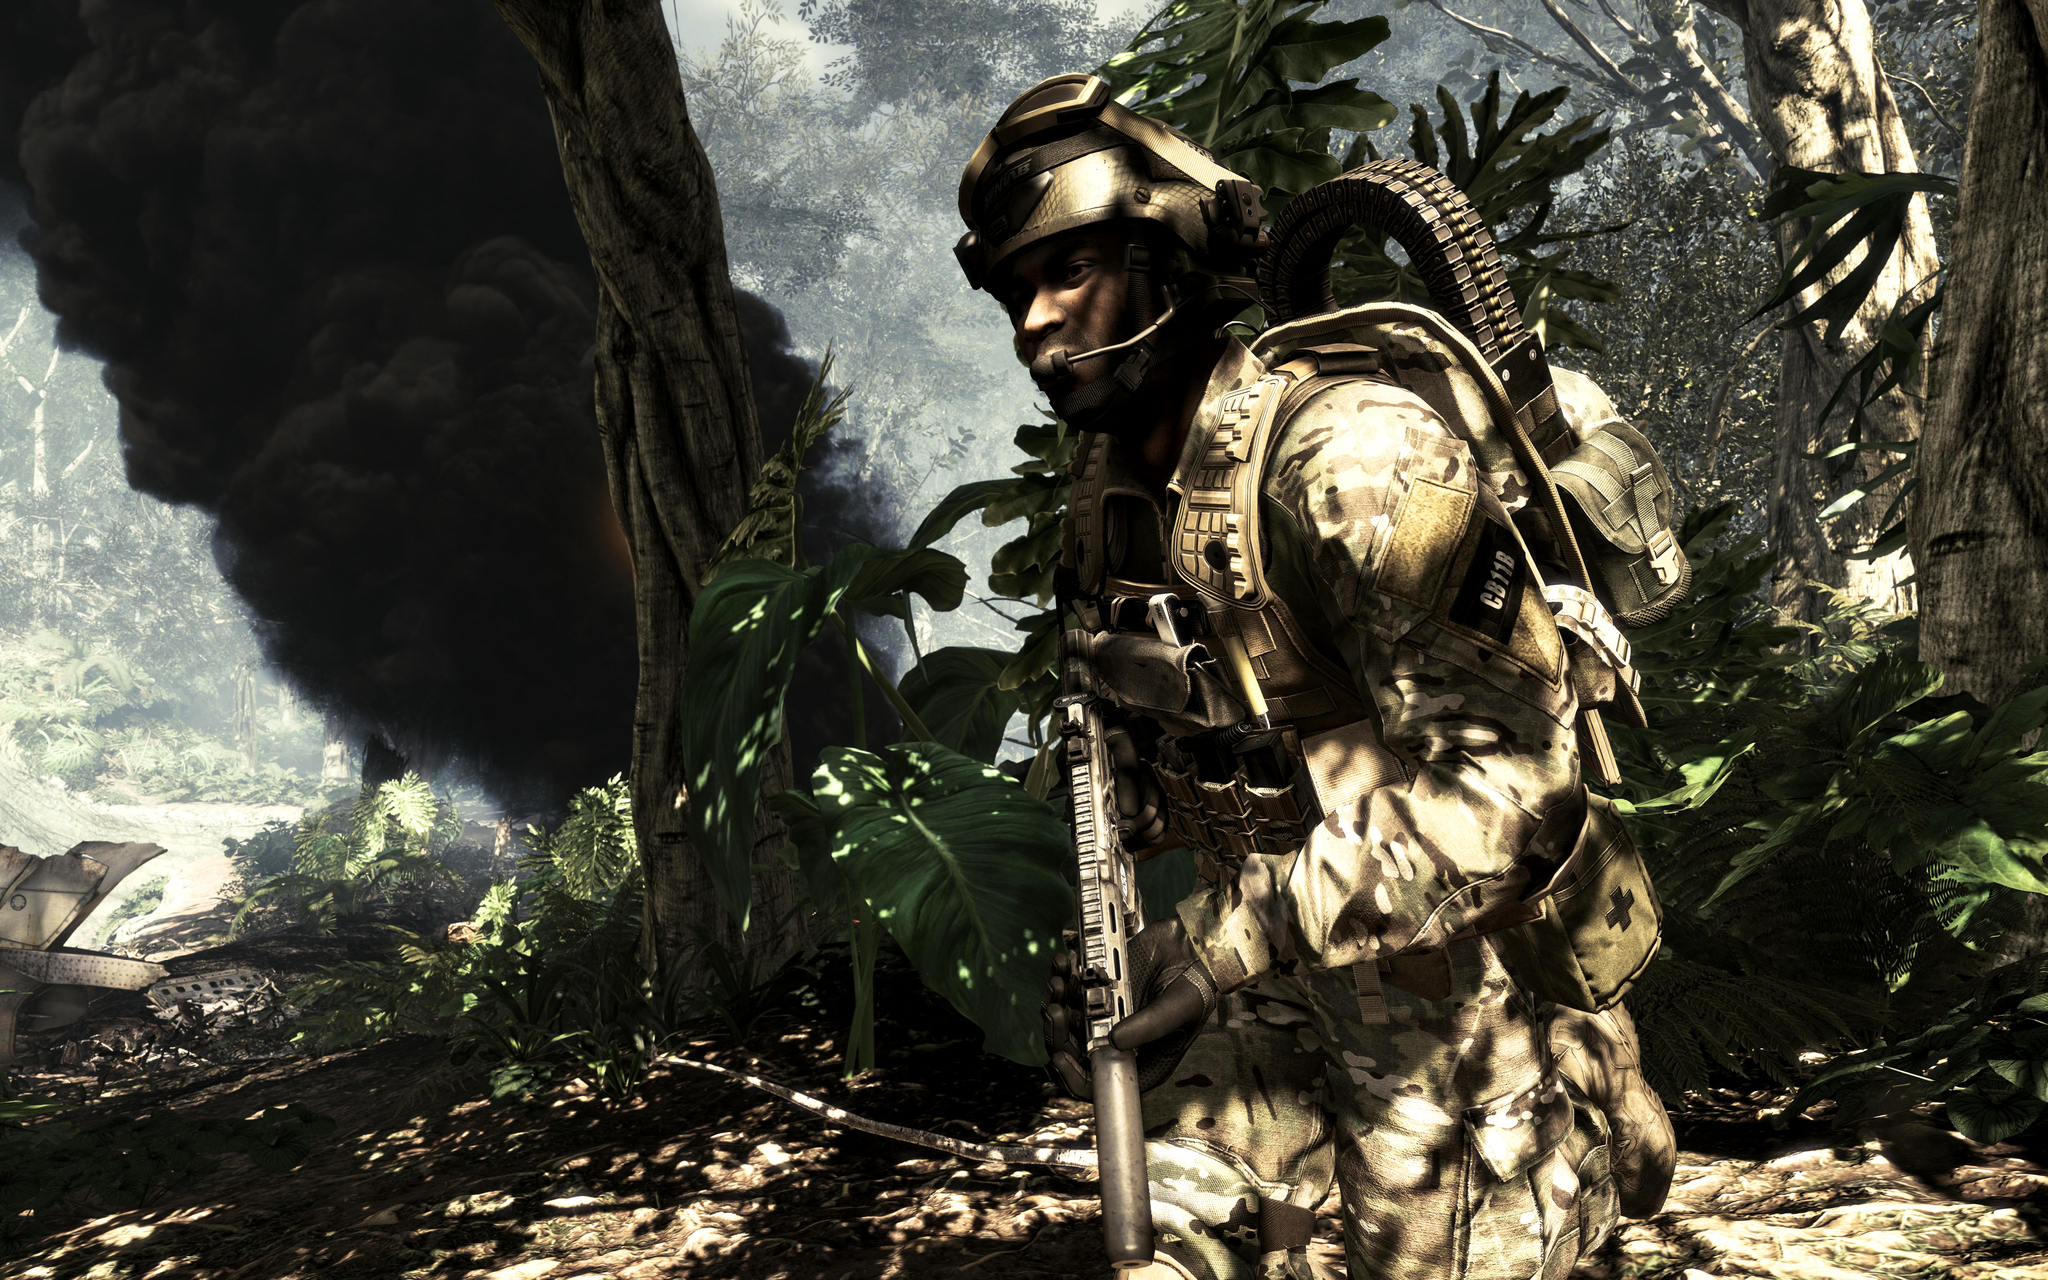 Outnumbered and Outgunned but Not Outmatched Call of Duty Ghosts is an extraordinary step forward for one of the largest entertainment franchises of alltime